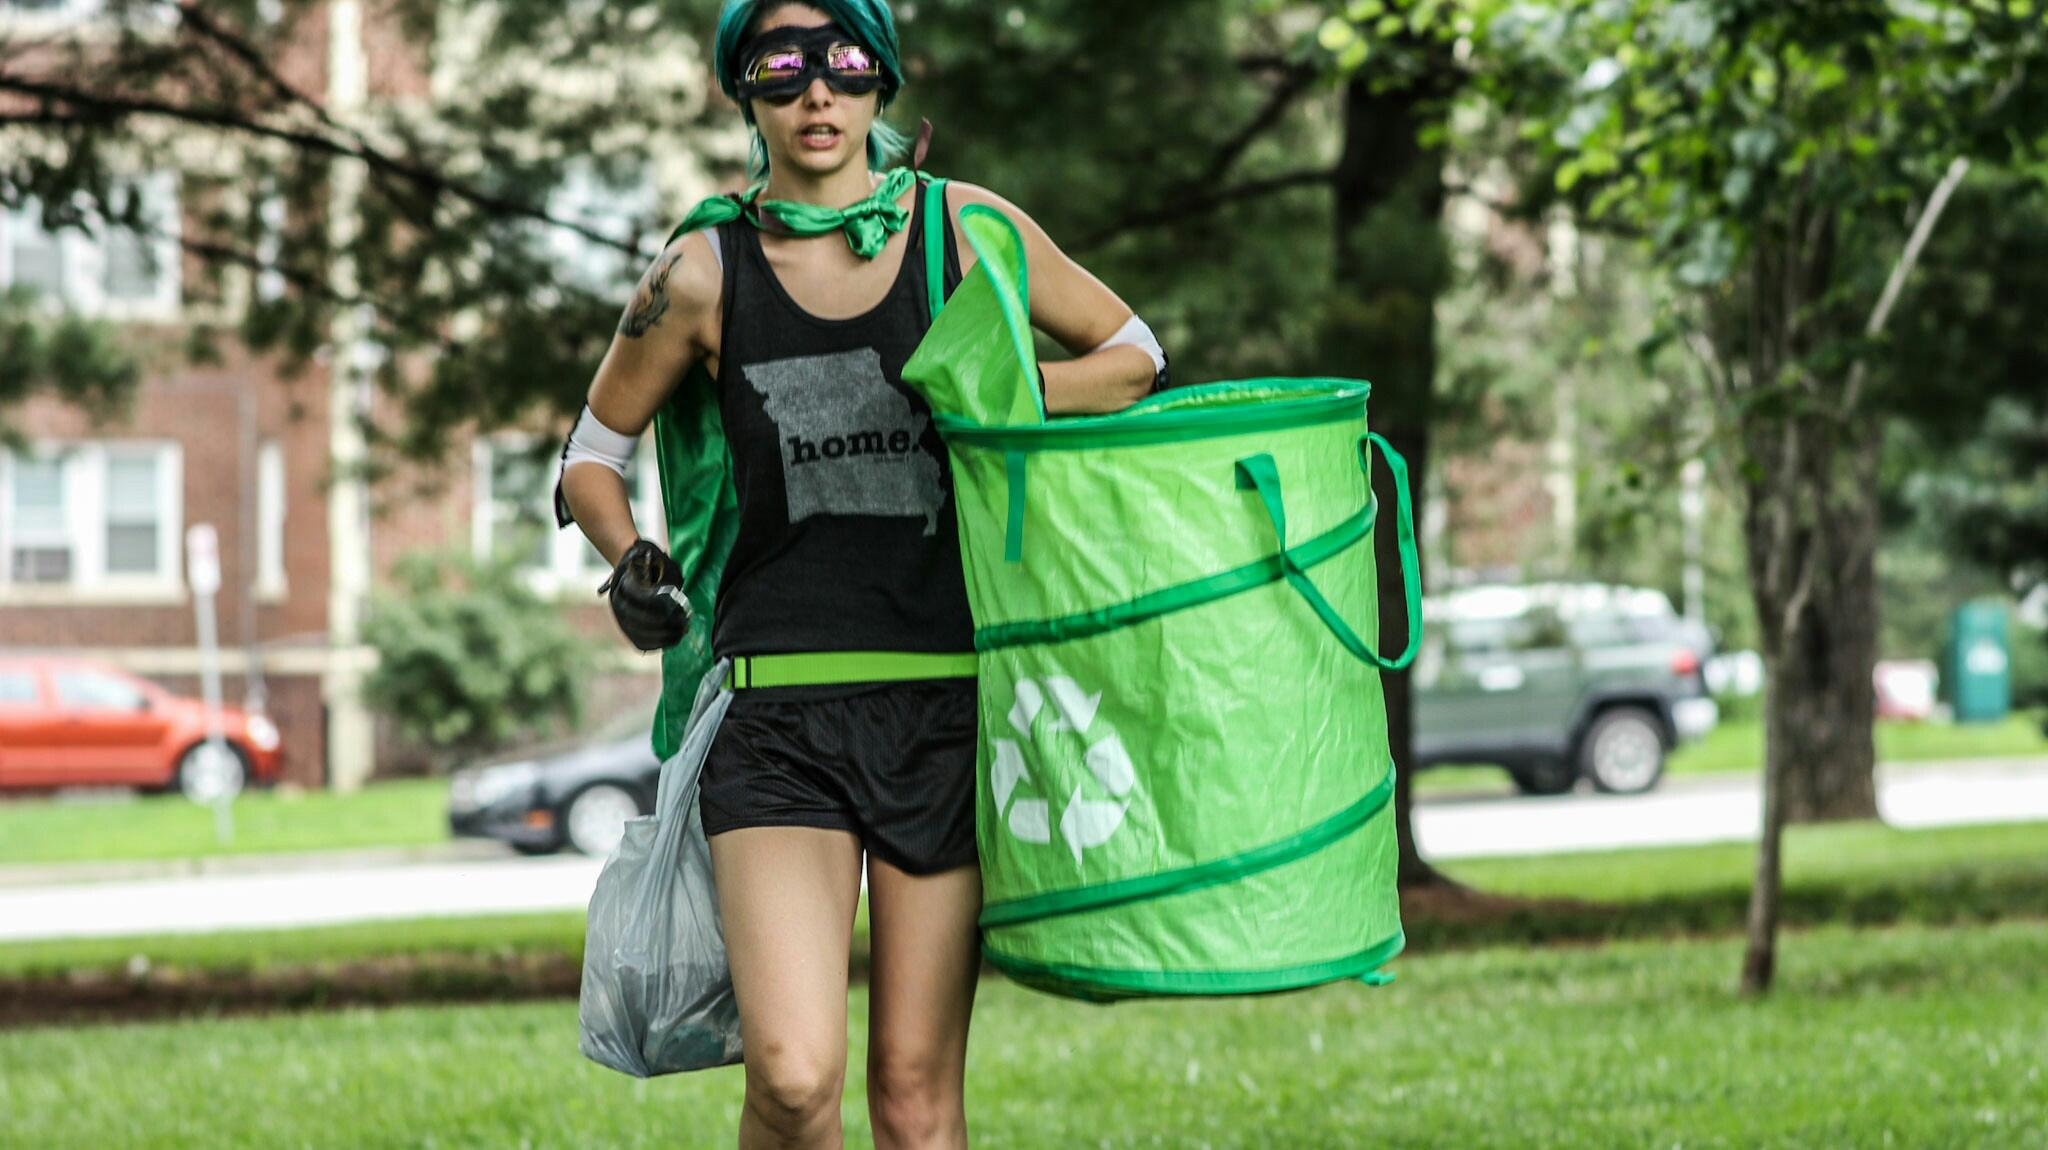 Kansas City resident KC EarthKid is taking to the streets to save the planet